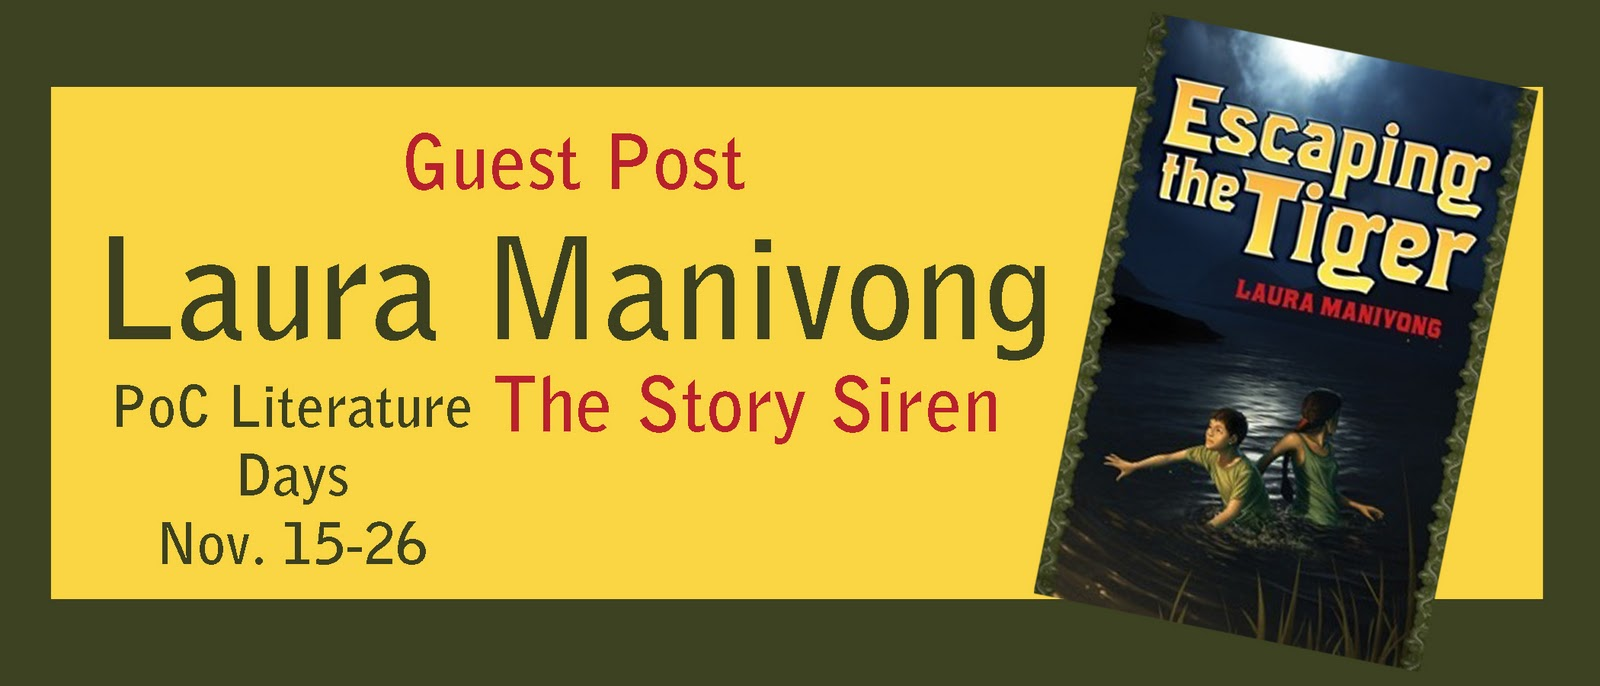 Guest Post: Laura Manivong